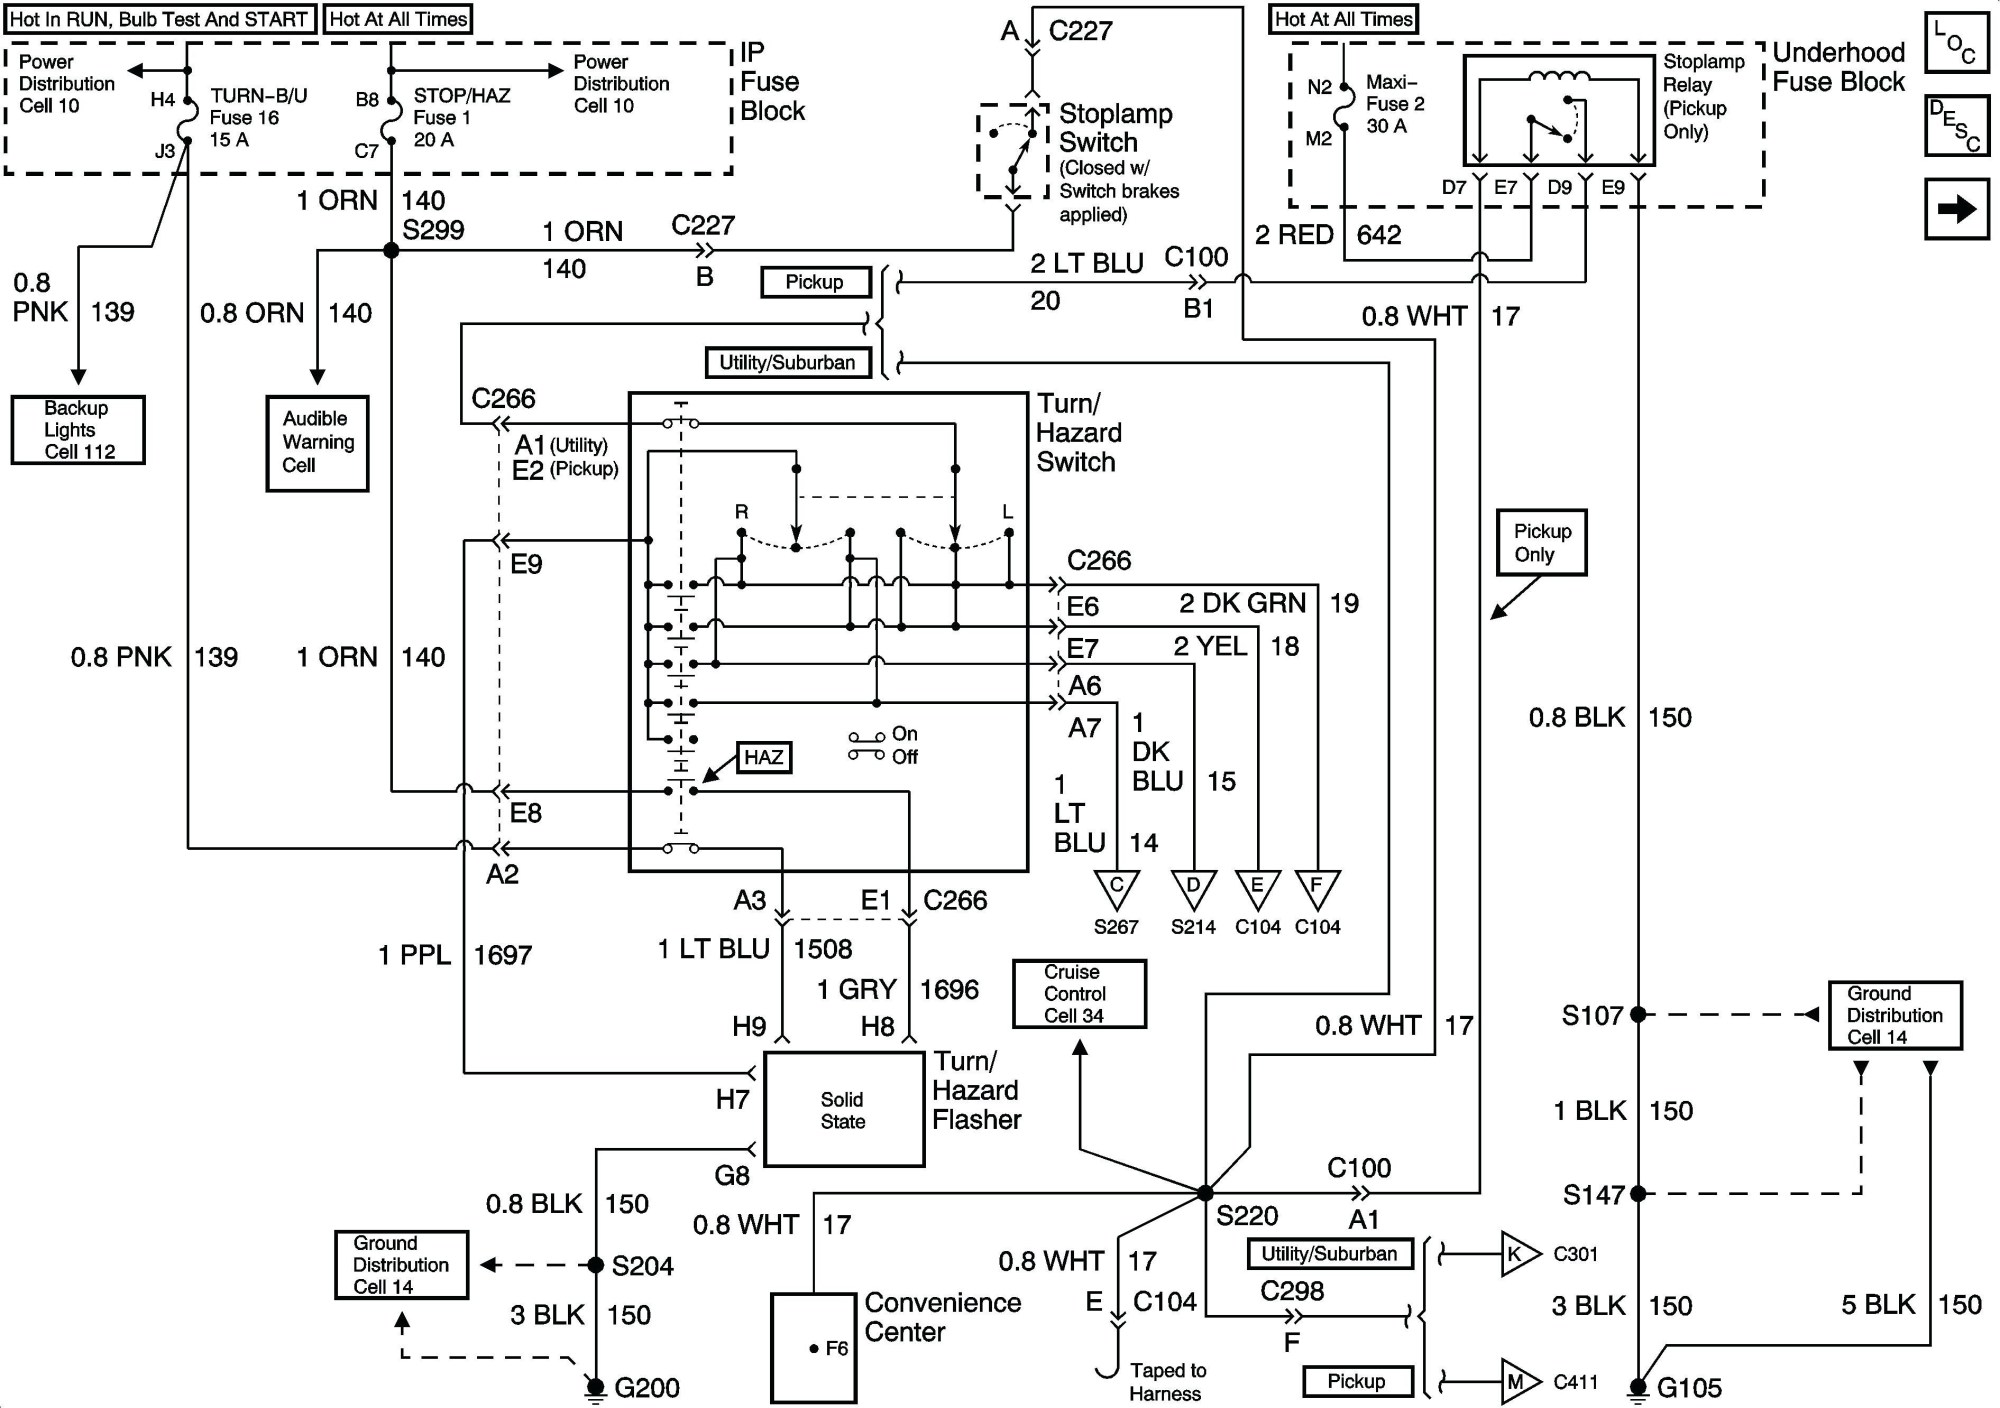 hight resolution of 1996 rav4 wiring diagram best wiring library rh 137 princestaash org 2012 toyota rav4 stereo wiring diagram 2012 toyota rav4 electrical diagram